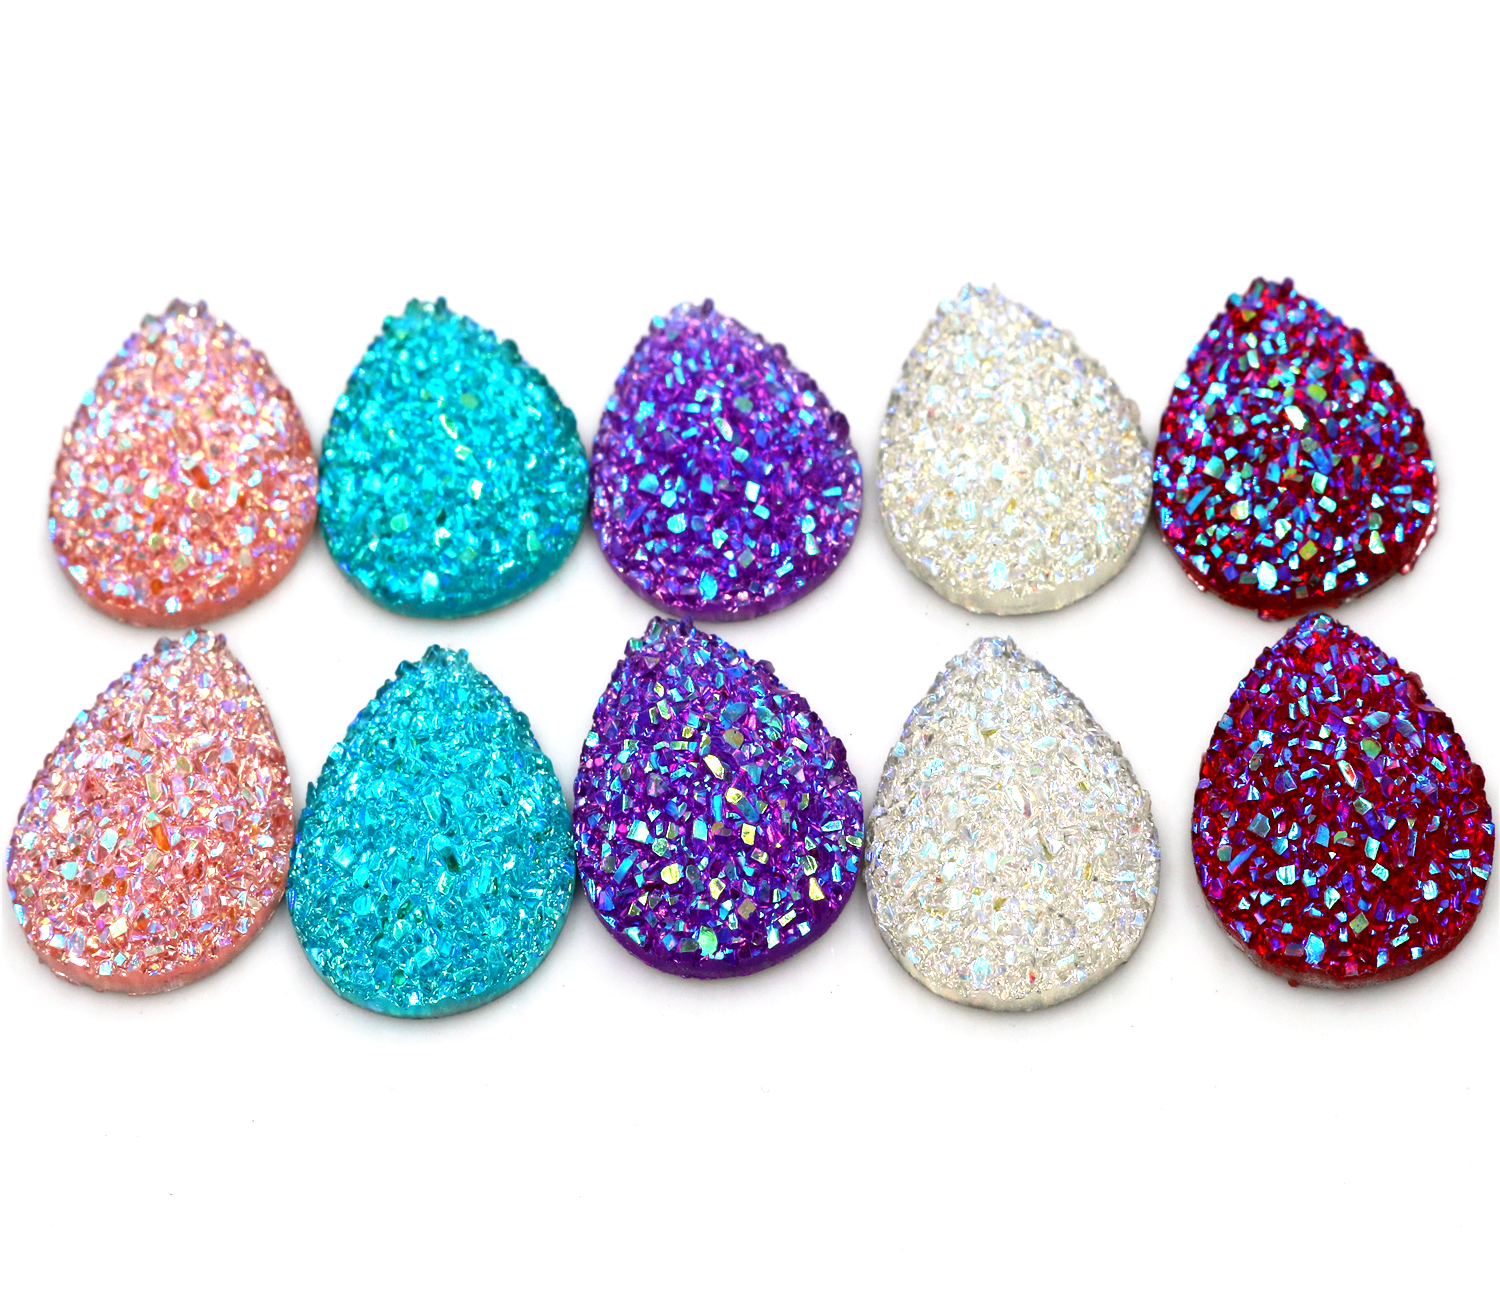 New Fashion 10pcs 18x25mm Drop Style Mix Colors Natural Stone Types Flat Back Resin Cabochons Cameo